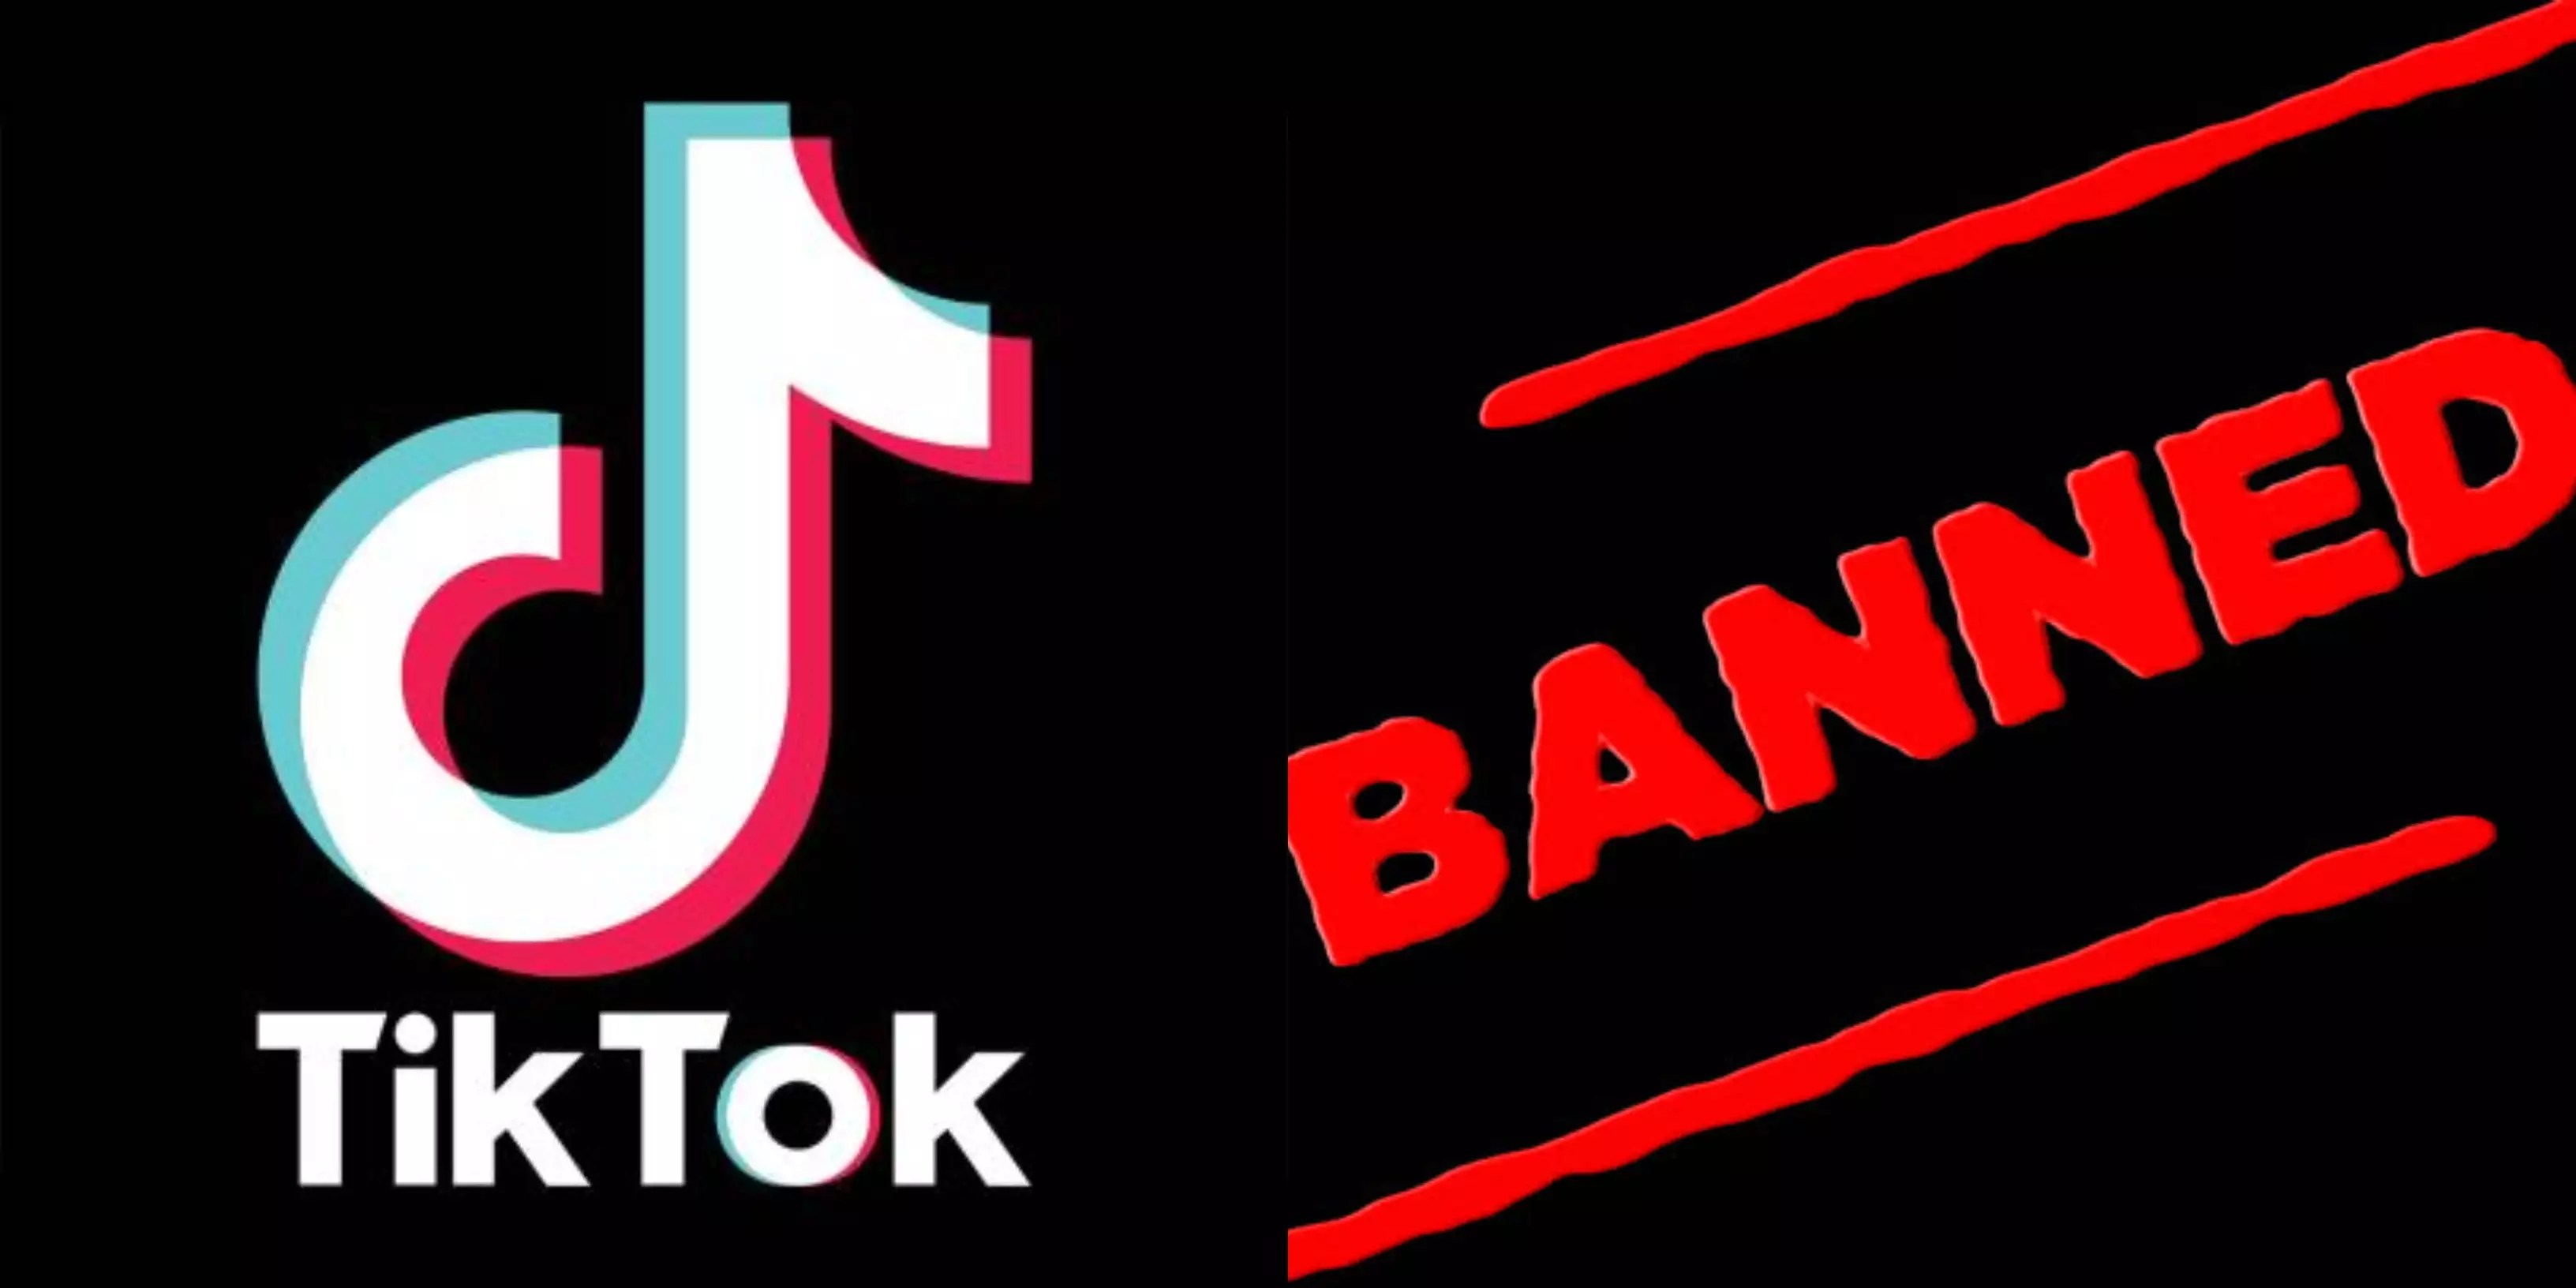 India in discussions to ban tiktok